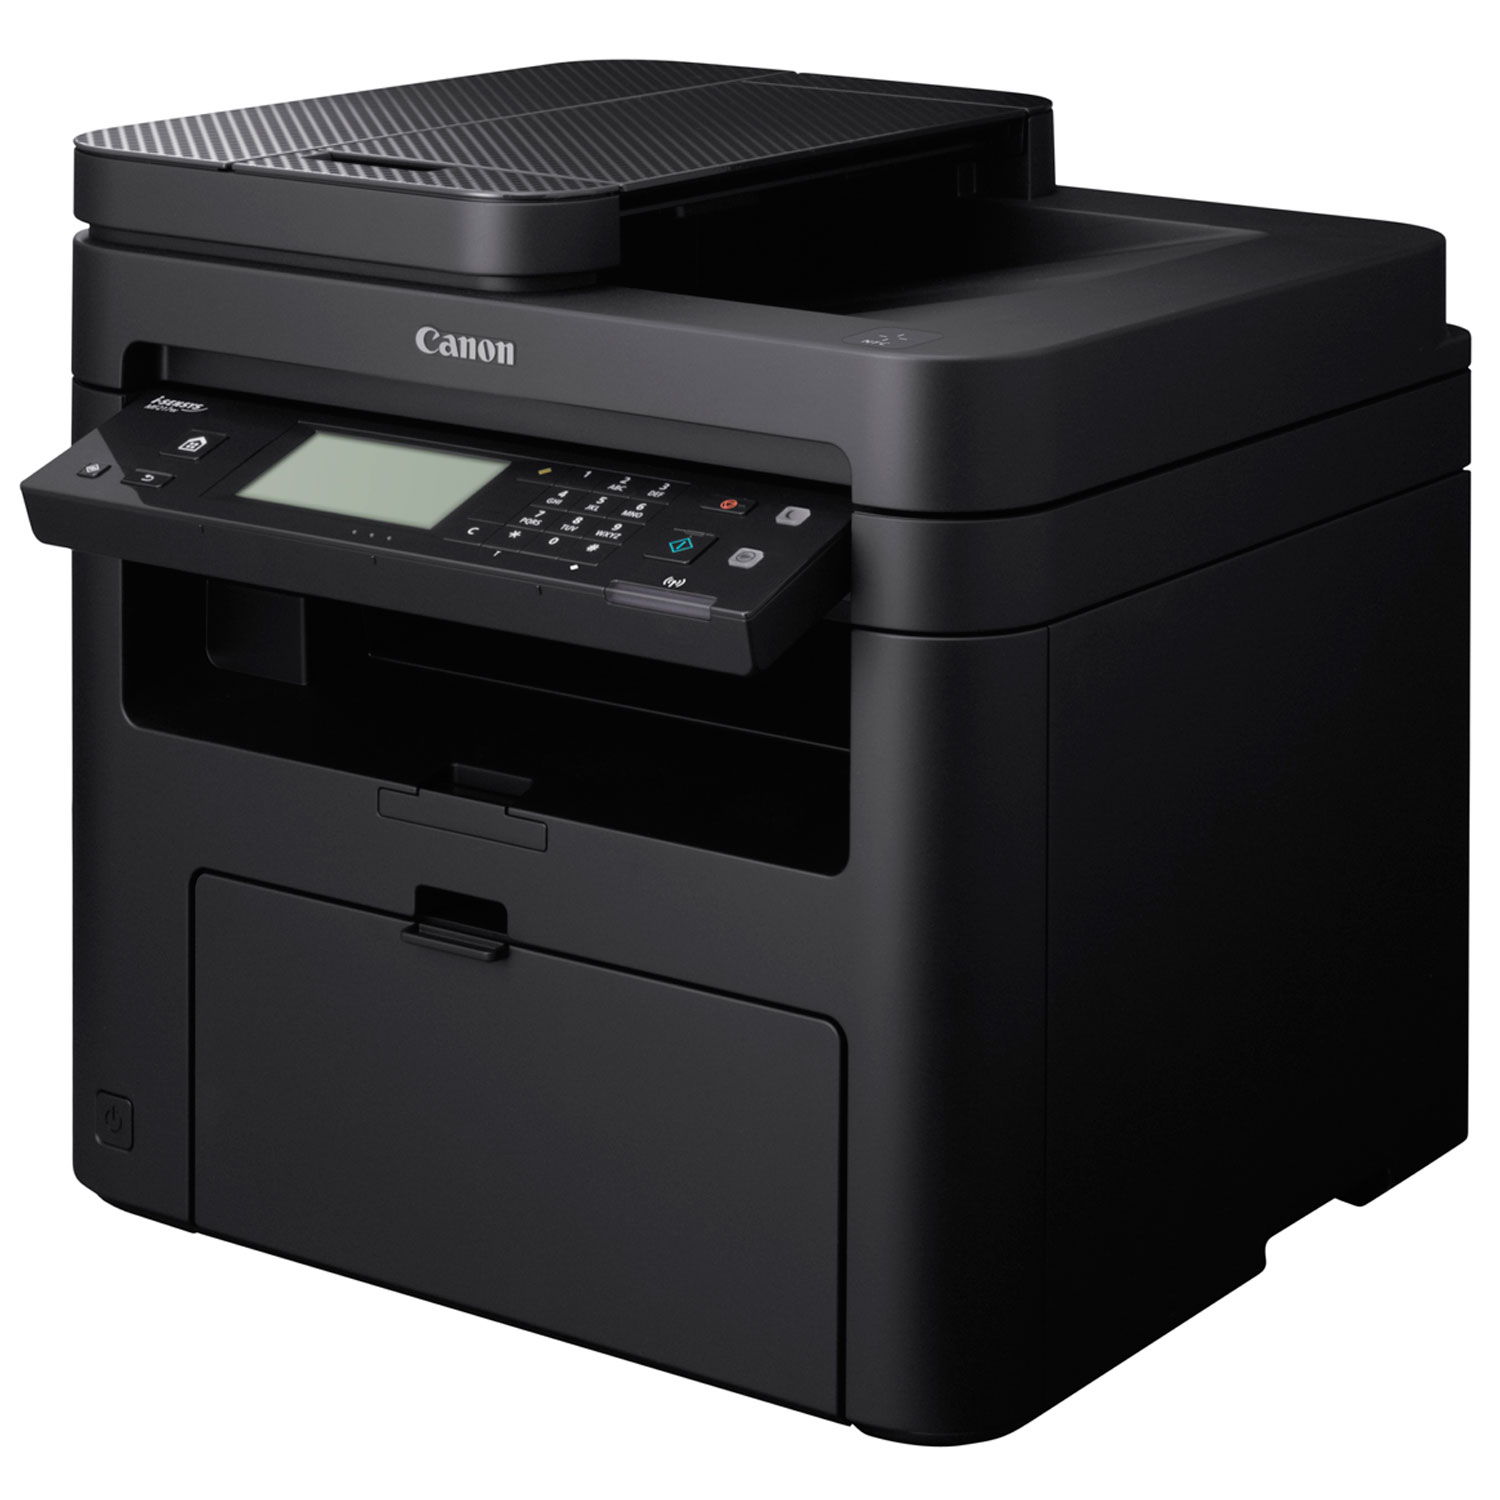 Canon i-SENSYS MF217w laserjet printer